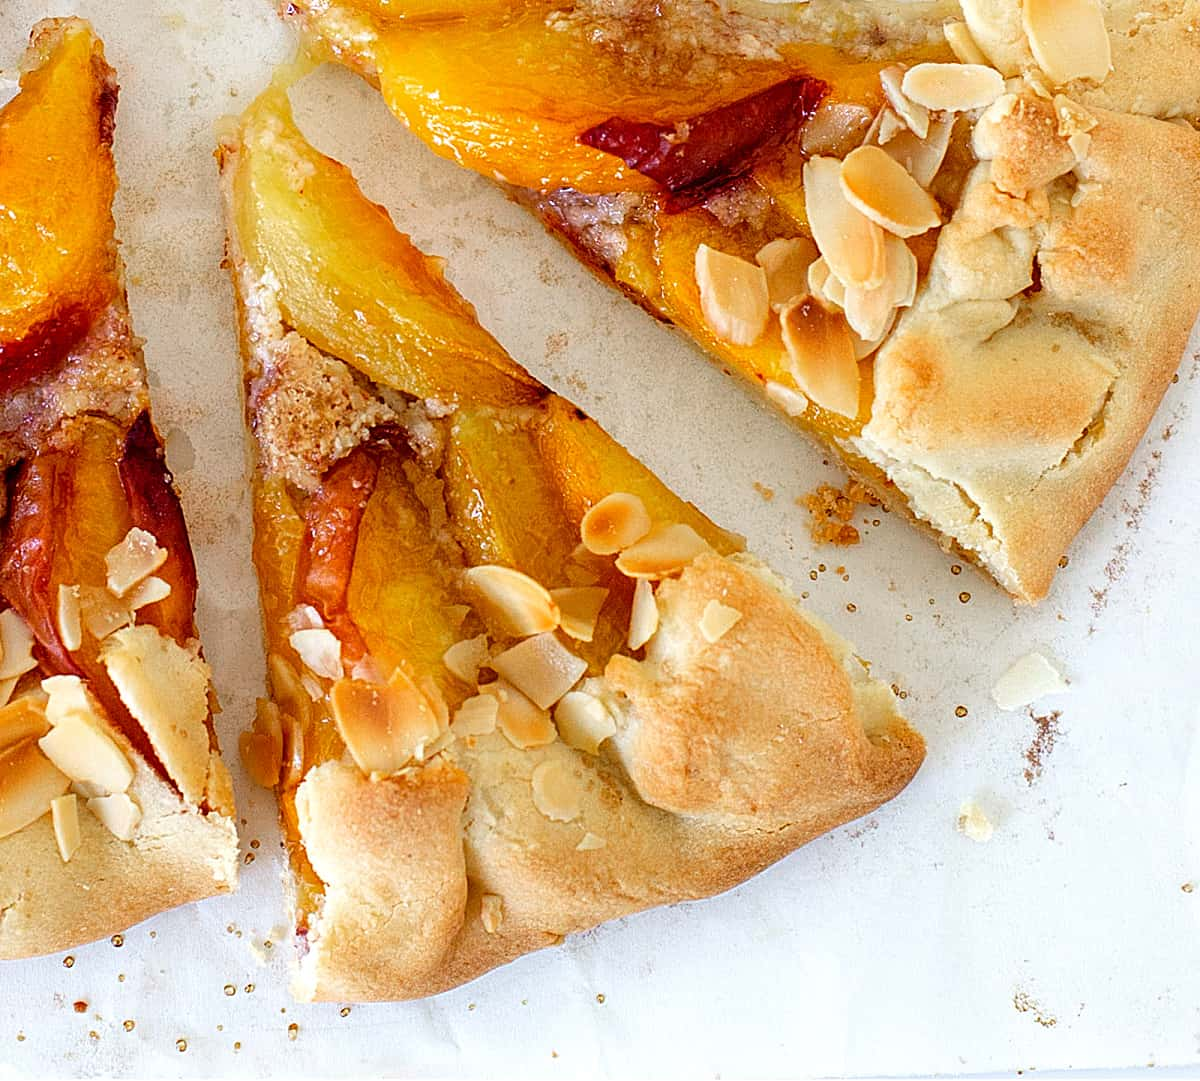 Close-up of two slices of baked peach galette on a white surface